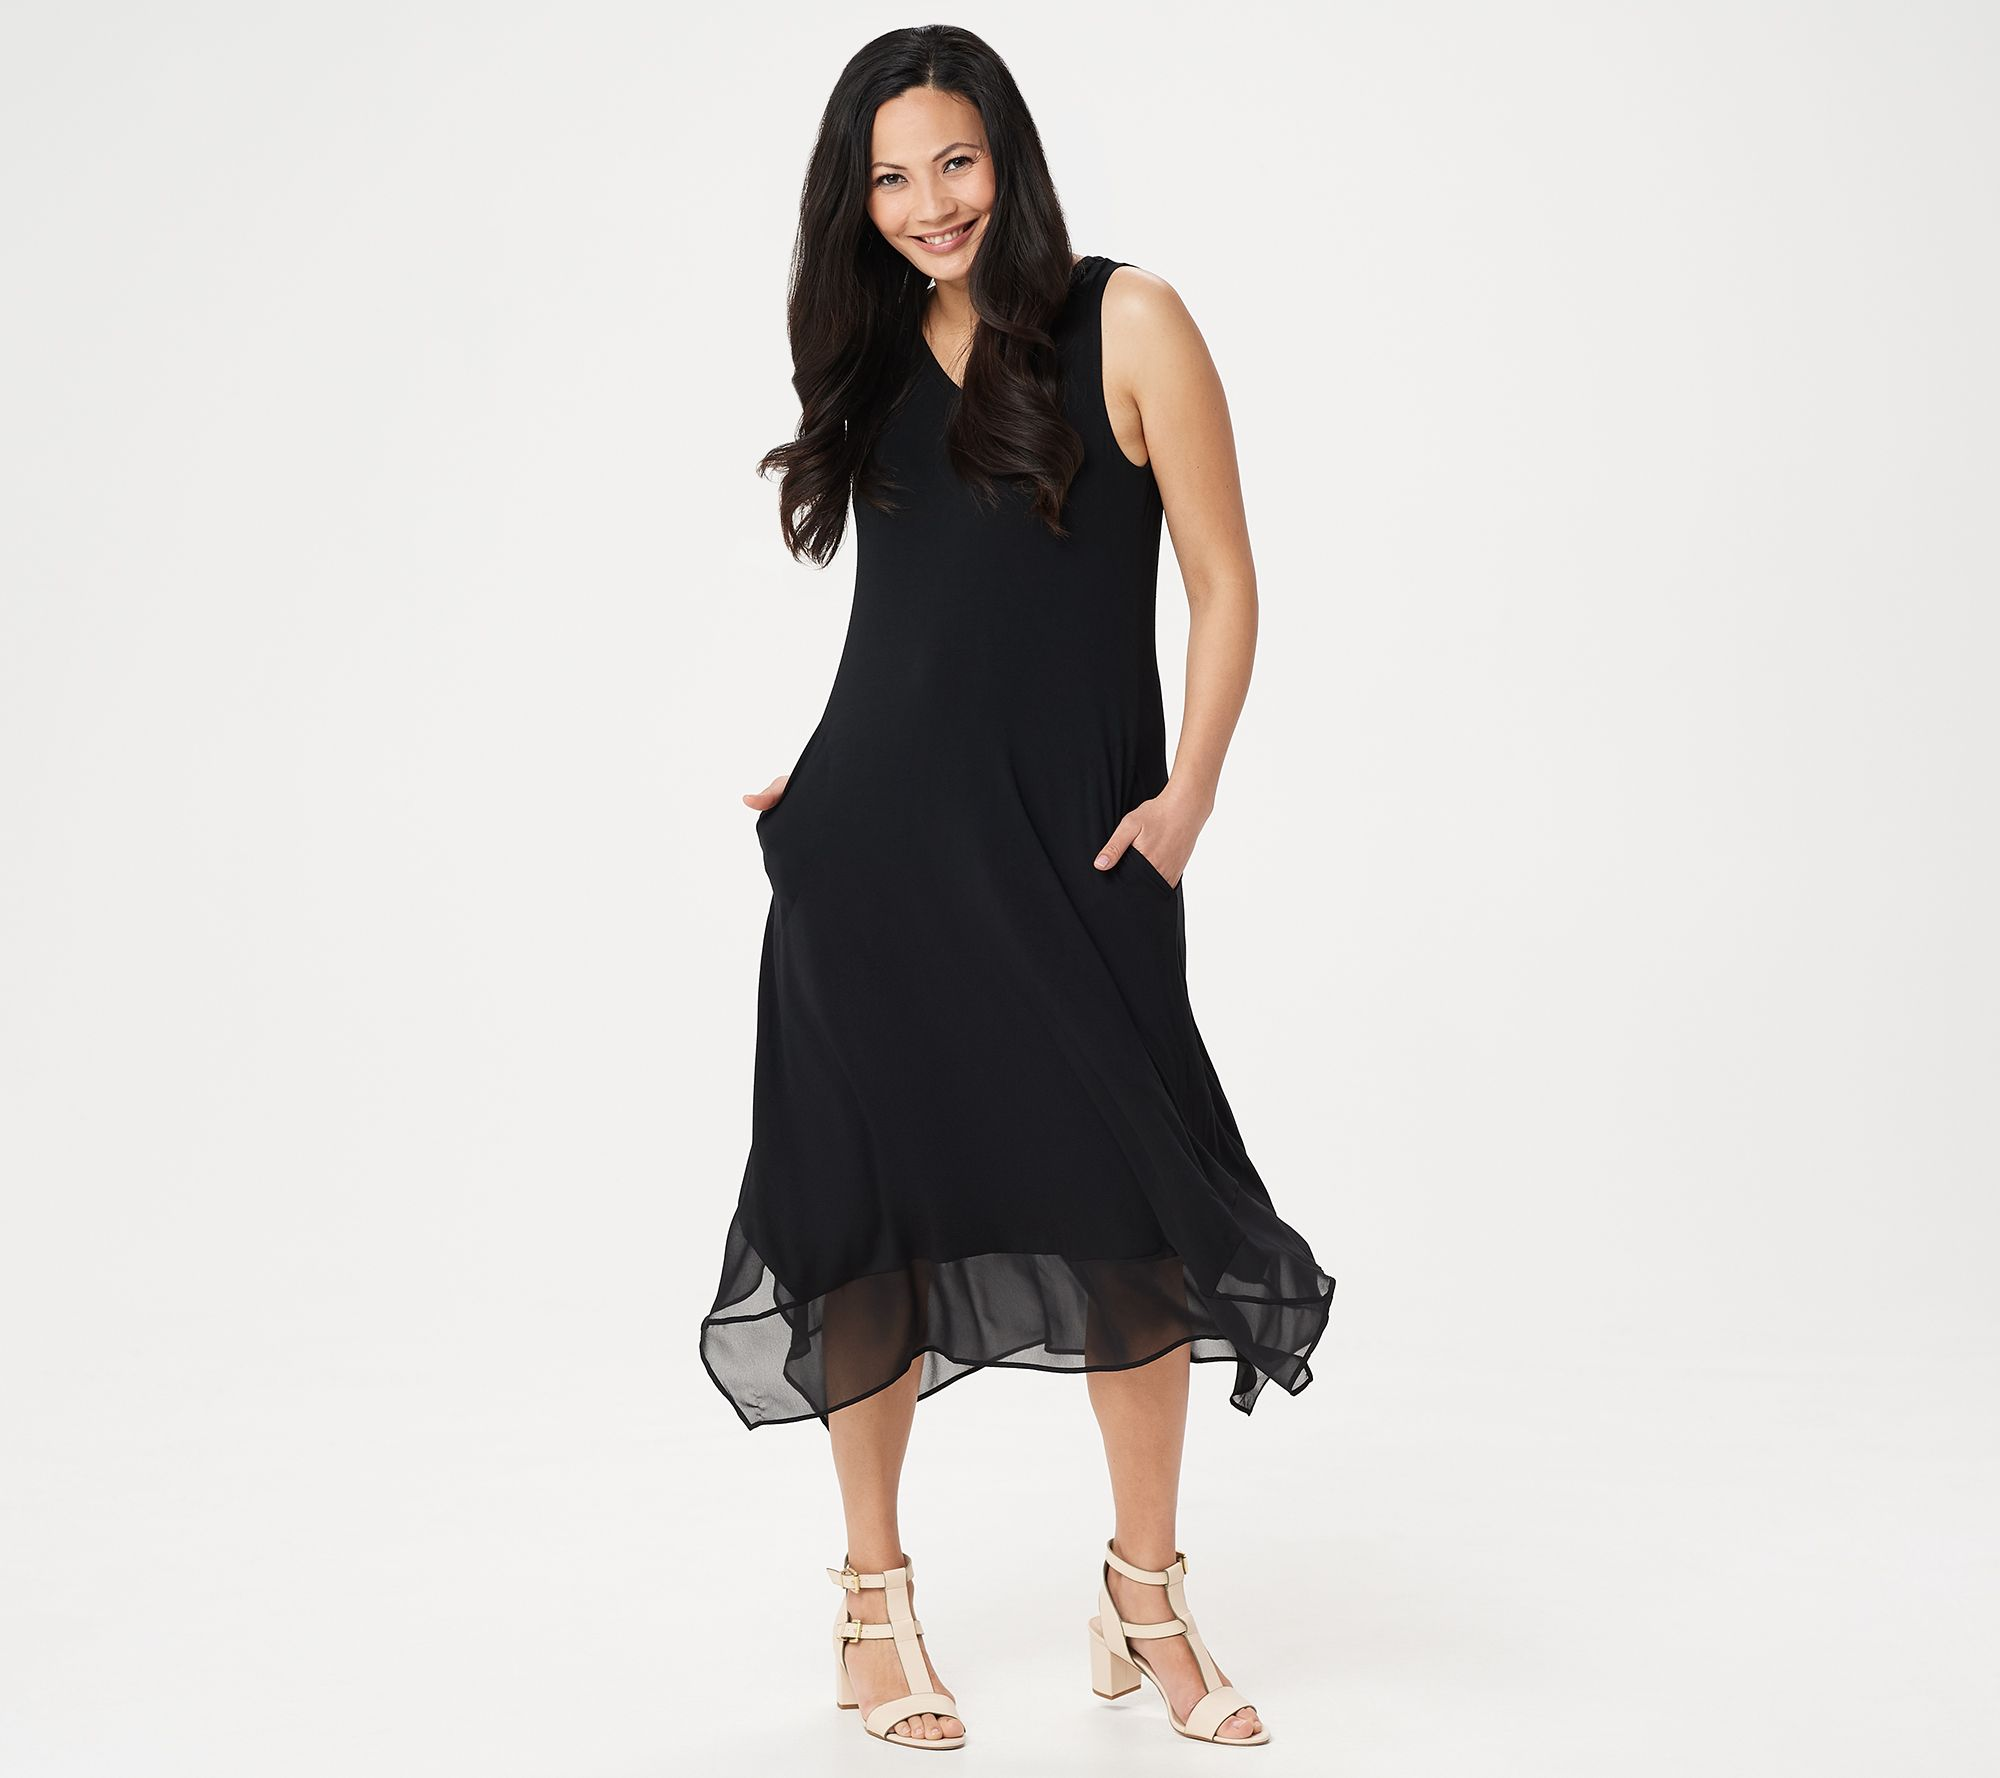 b9f8f8fa8 LOGO by Lori Goldstein Knit Sleeveless Maxi Dress with Chiffon Trim - Page  1 — QVC.com